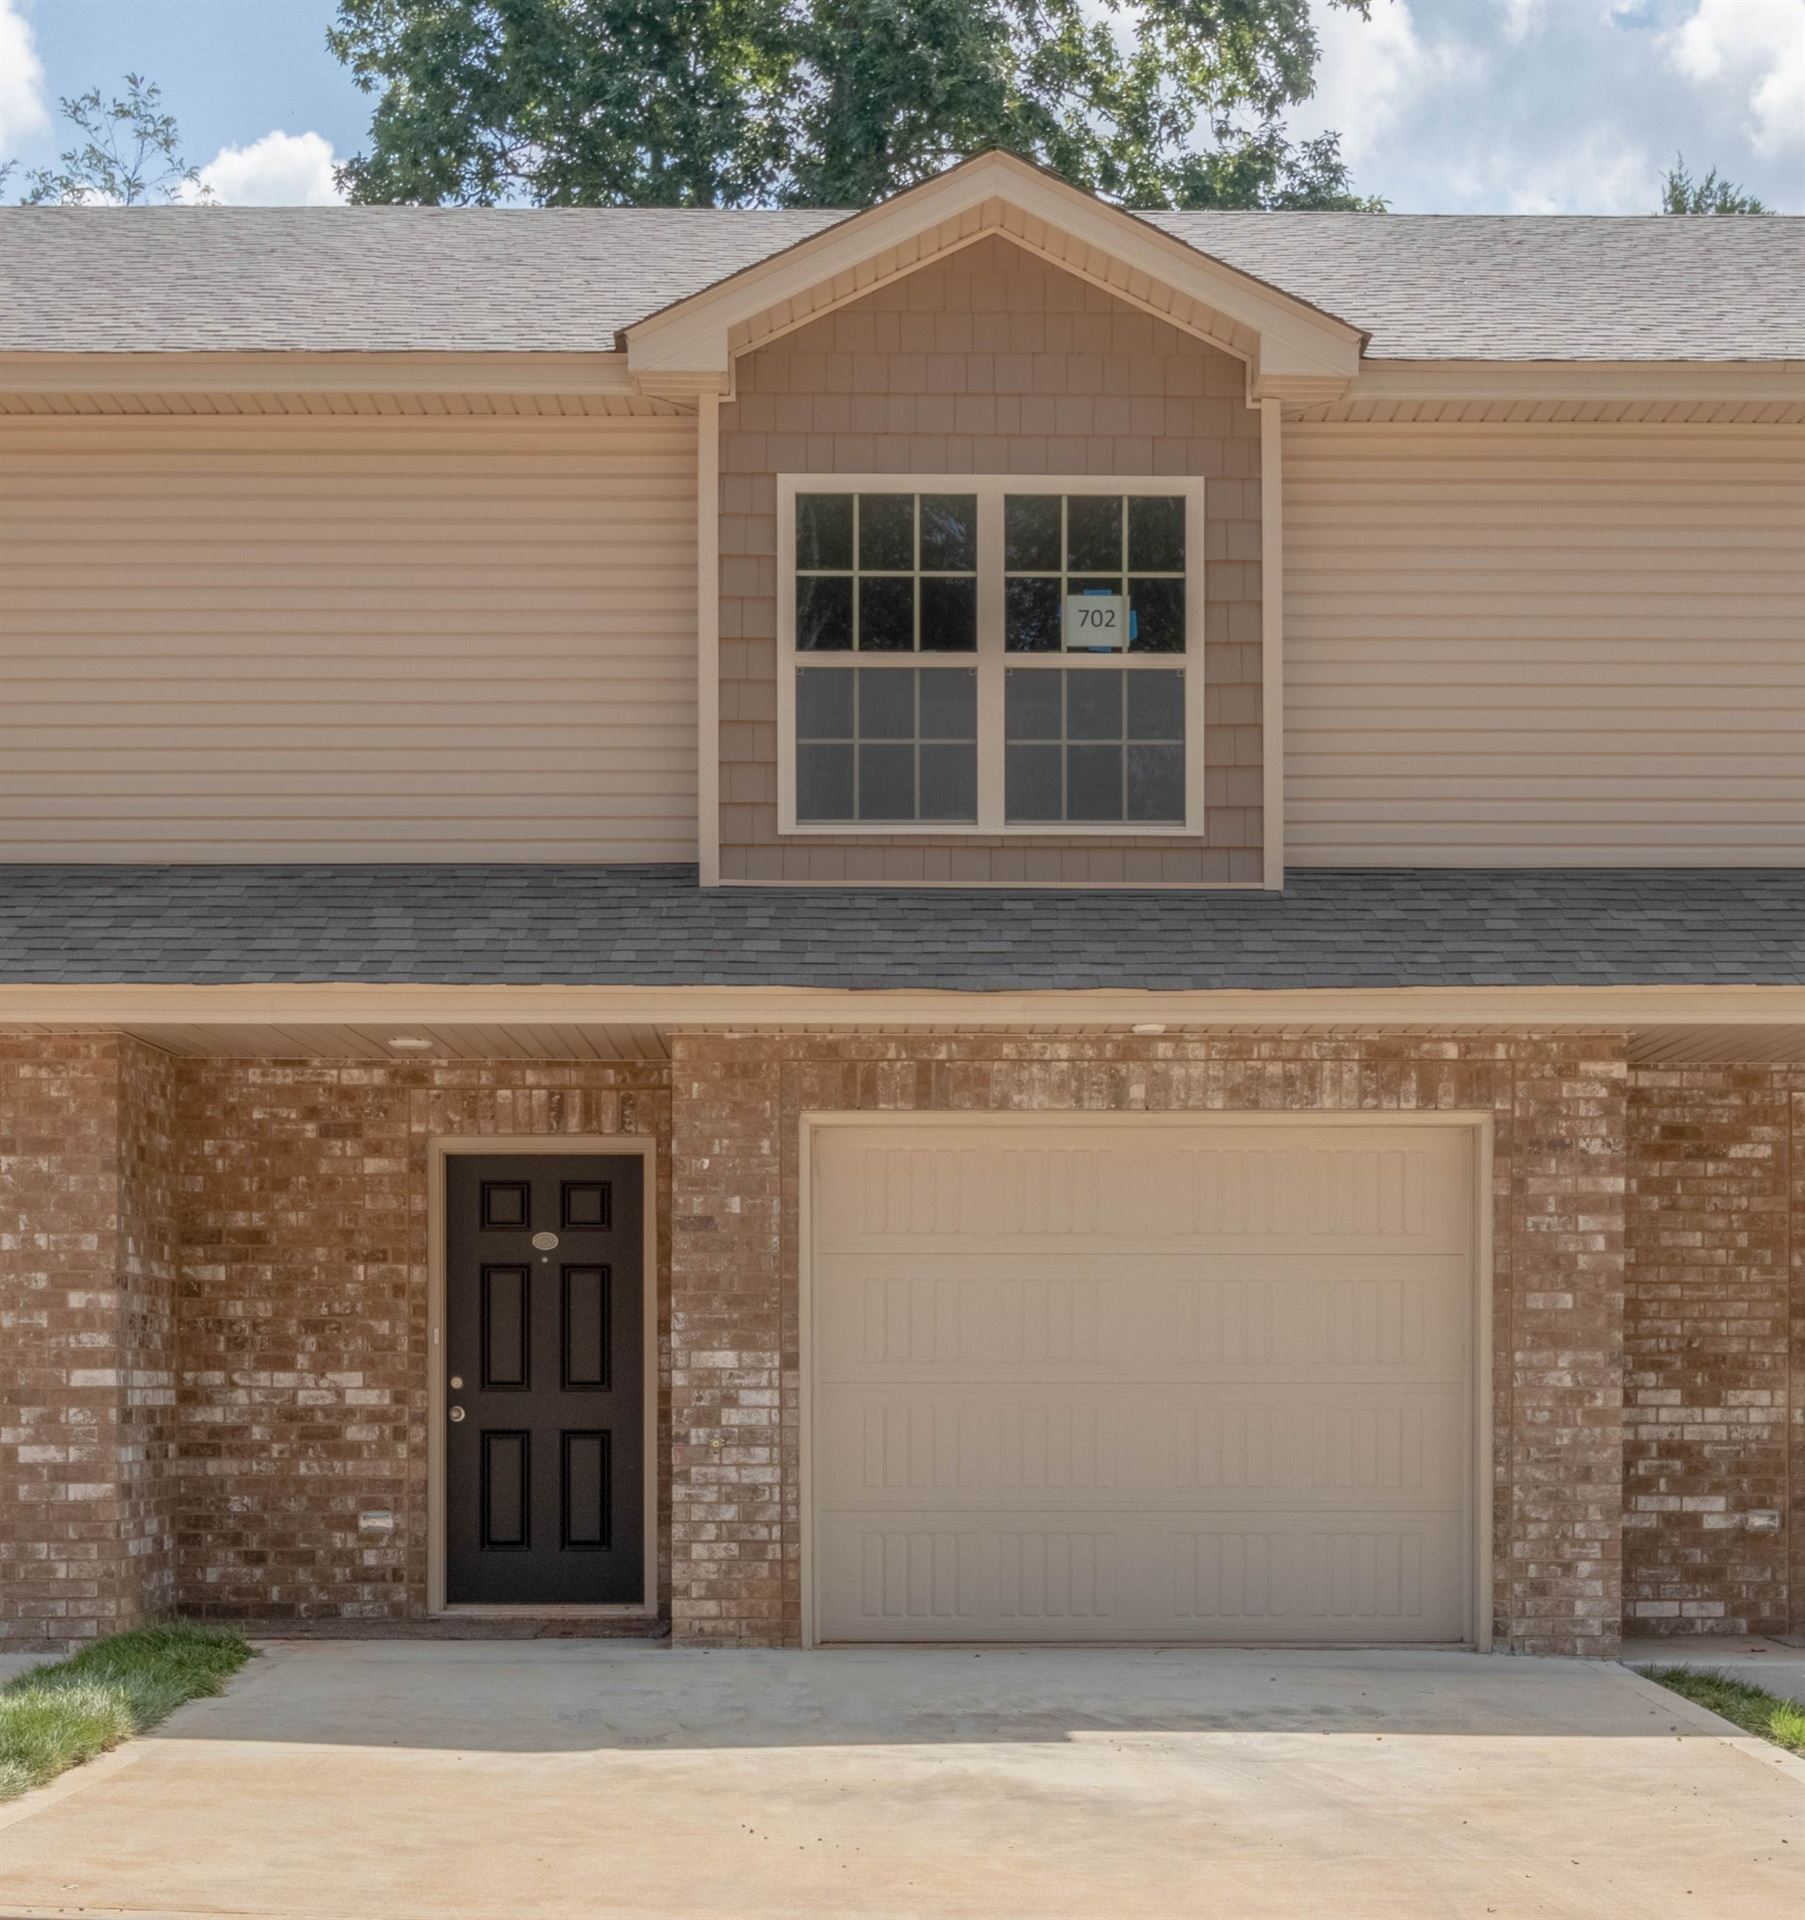 Photo for 135 Country Lane Unit 703, Clarksville, TN 37043 (MLS # 2176503)